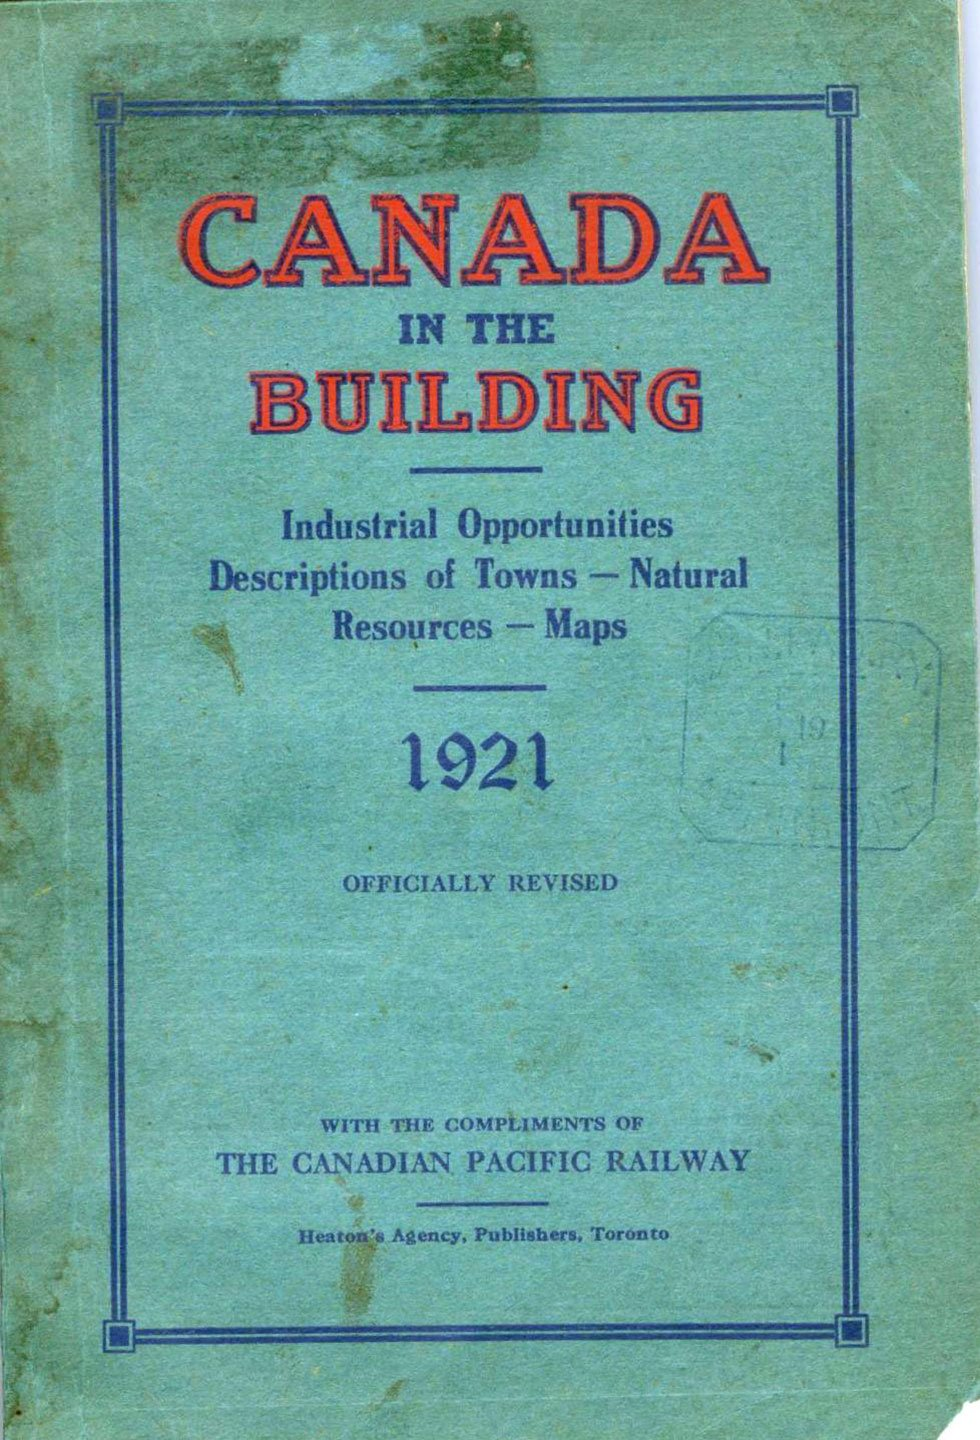 Canada in the Building: Industrial Opportunities - Descriptions of Towns - Natural Resources - Maps